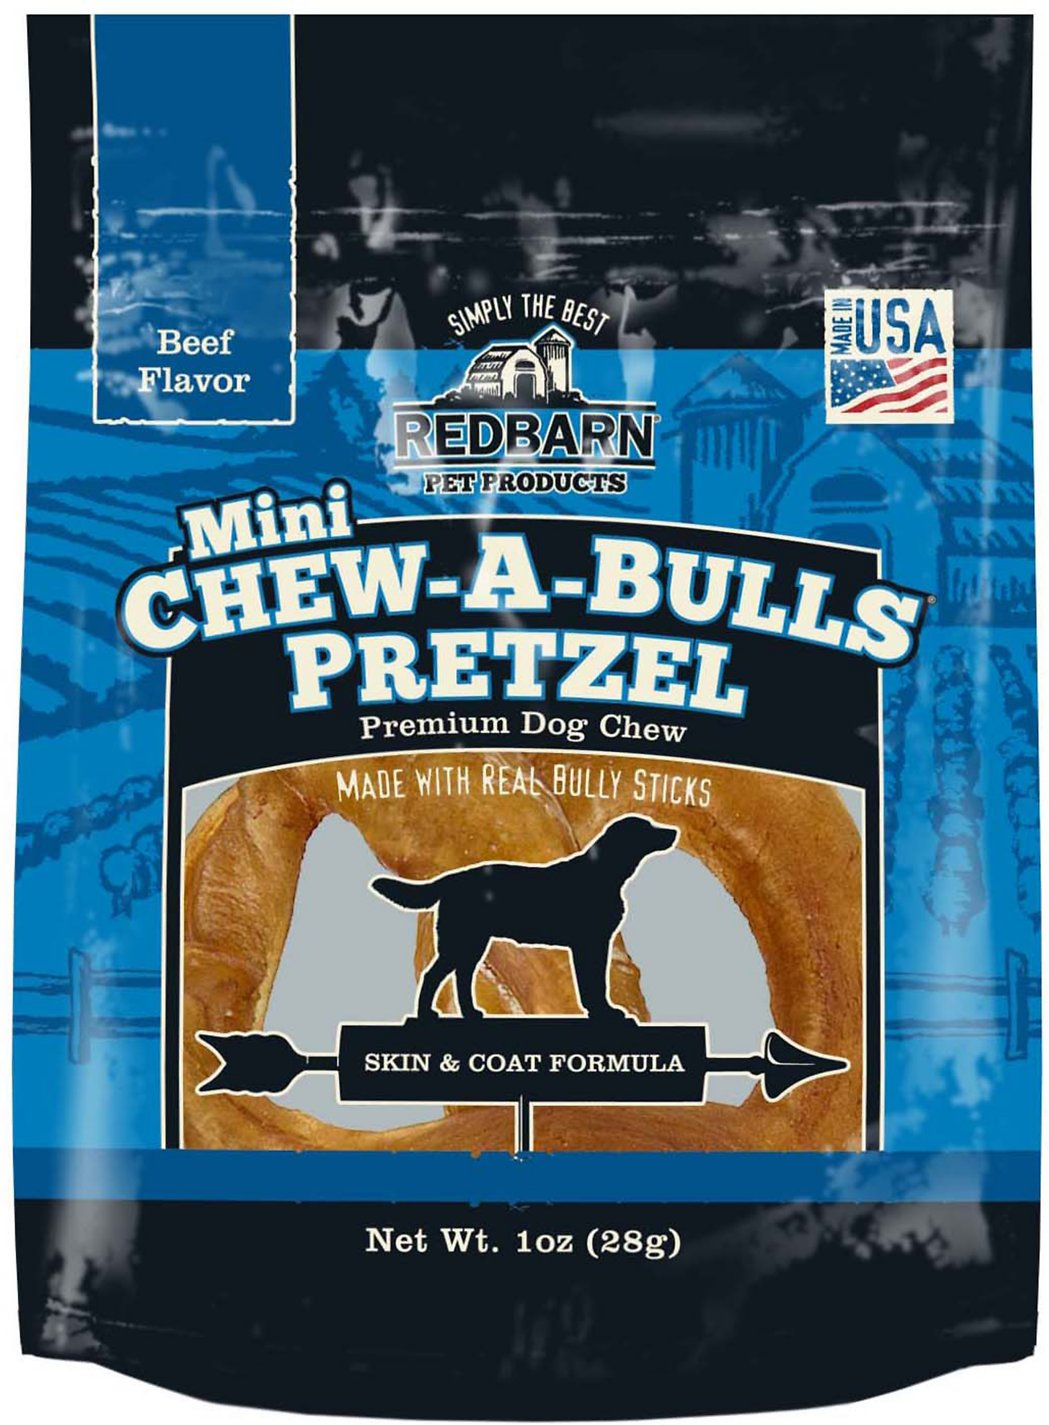 Redbarn Chew-A-Bulls Mini Pretzel Beef Flavor Dog Treat, 1 count